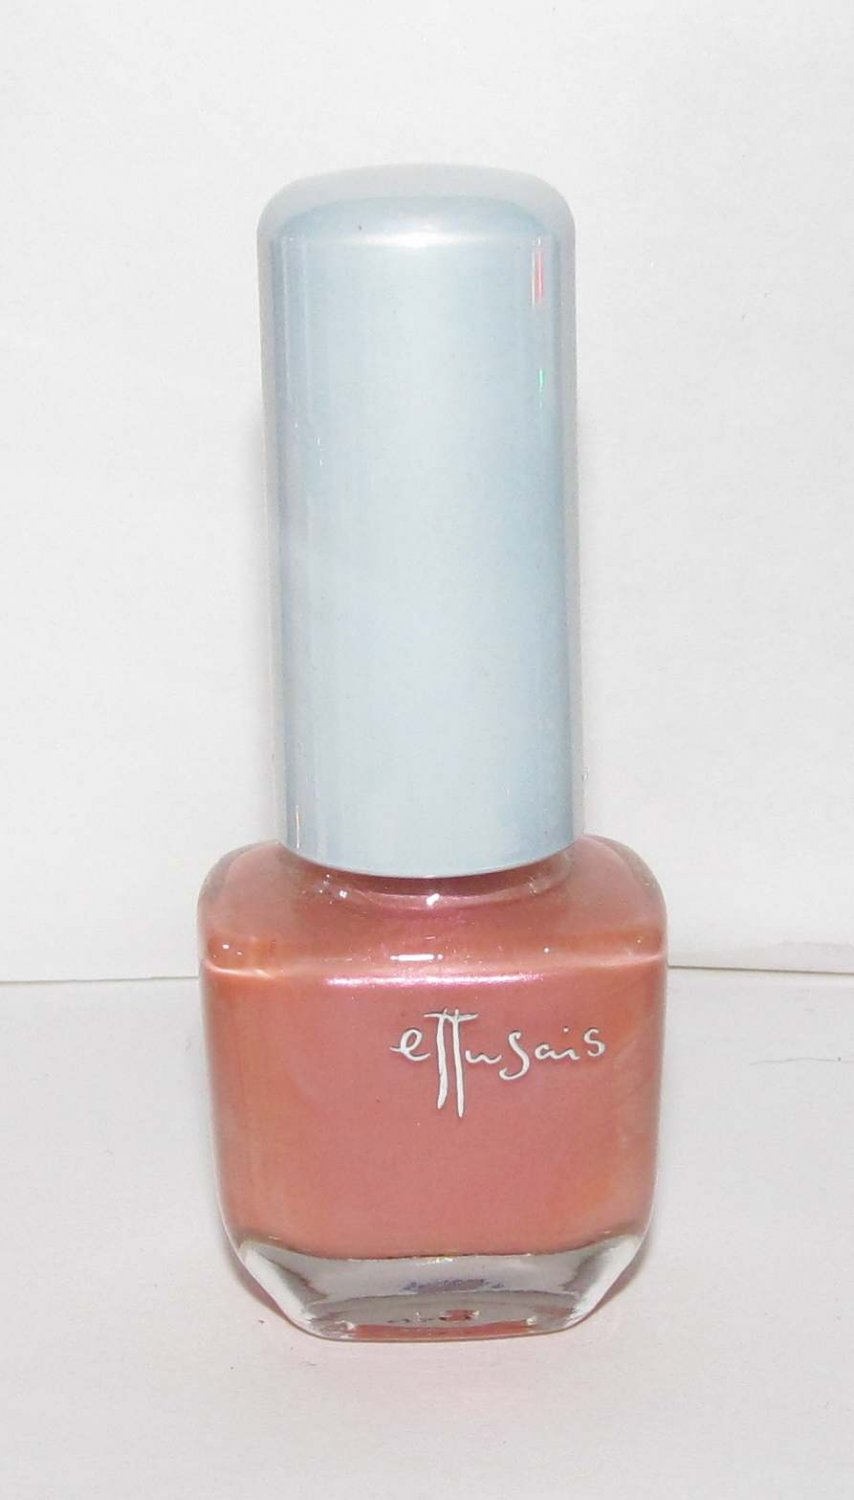 Ettusais Nail Polish - PK8 - NEW